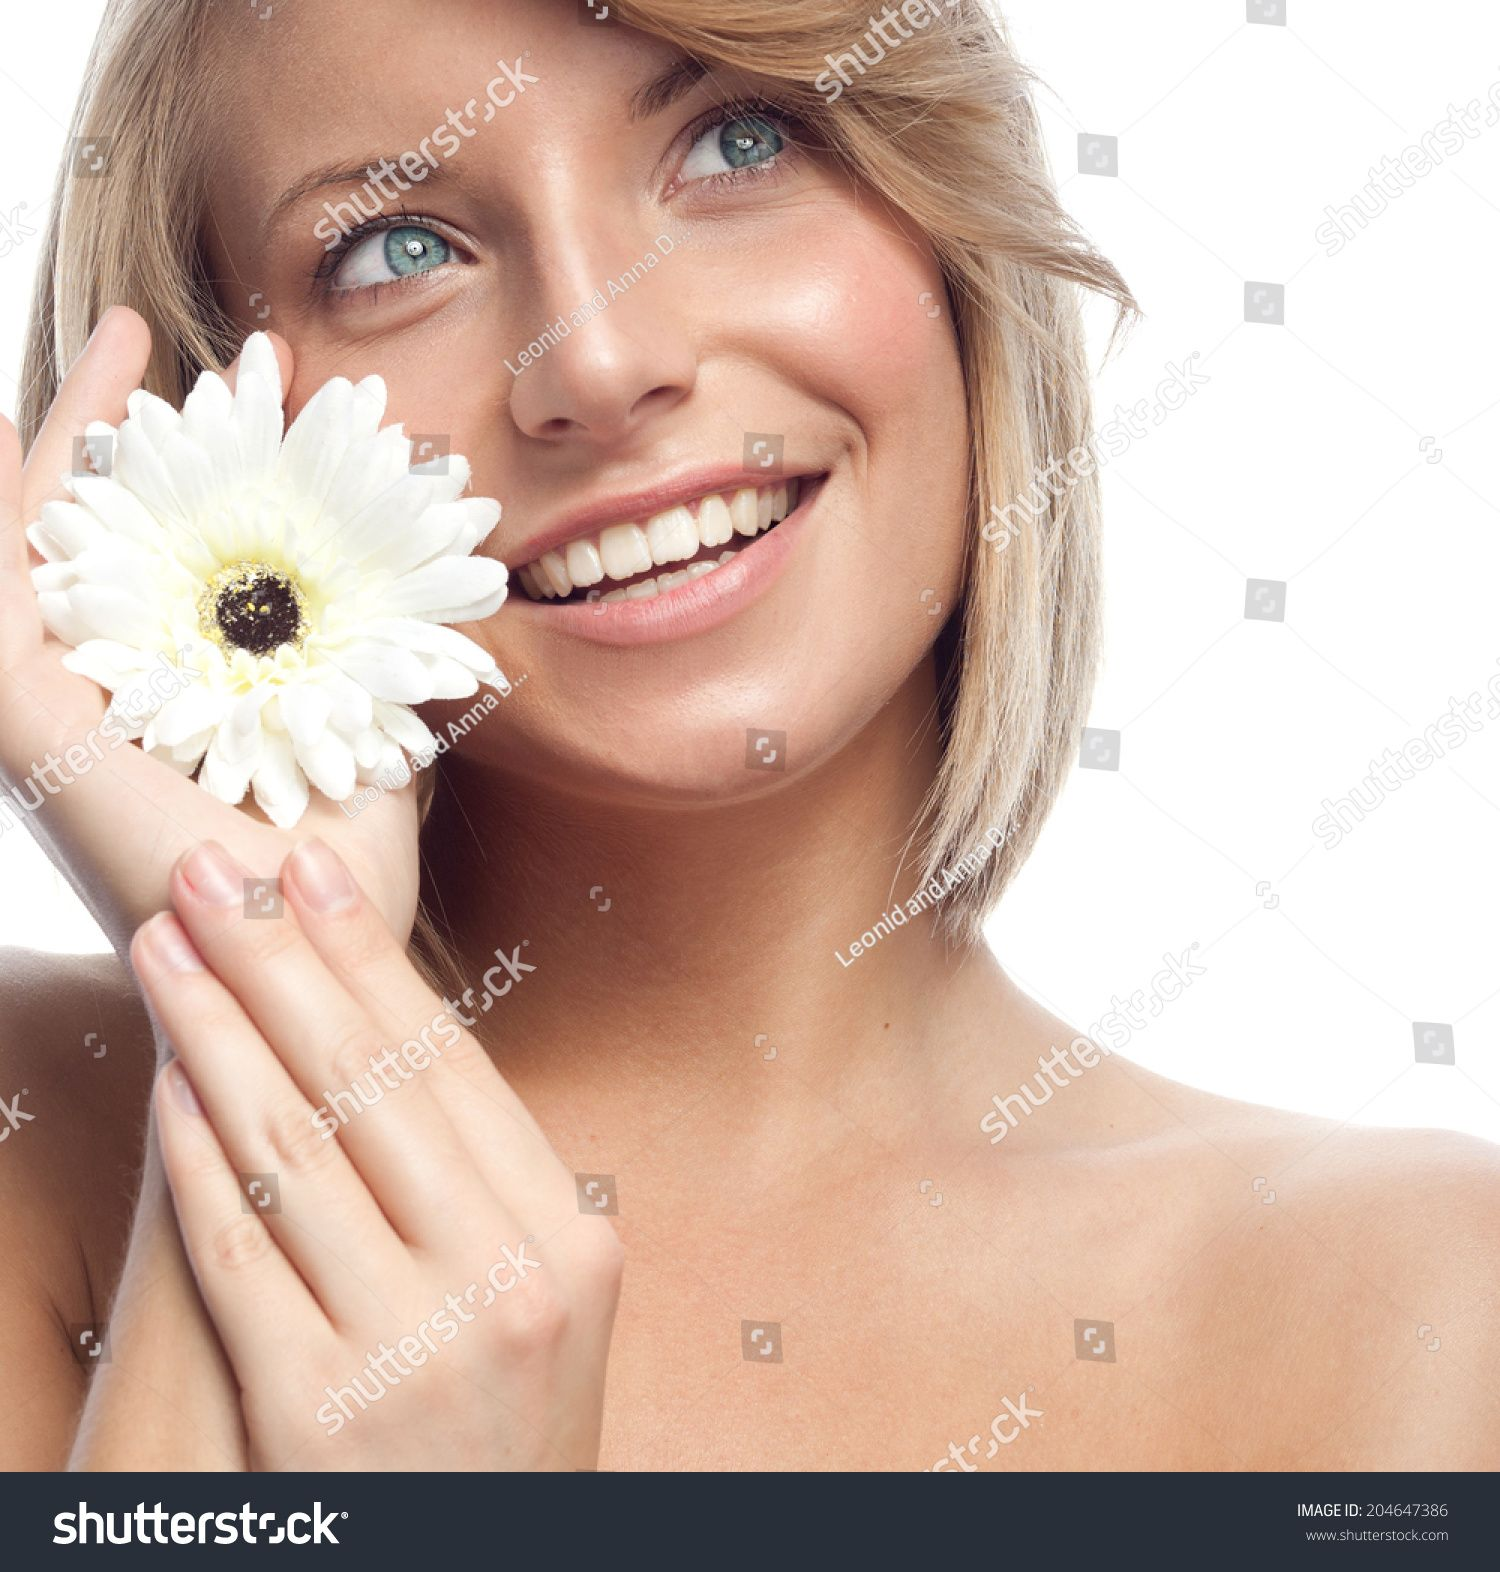 closeup portrait of attractive caucasian smiling woman blond isolated on white studio shot lips toothy smile face hair head and shoulders looking up blue eyes teeth flower #Sponsored , #AFFILIATE, #isolated#blond#white#shot